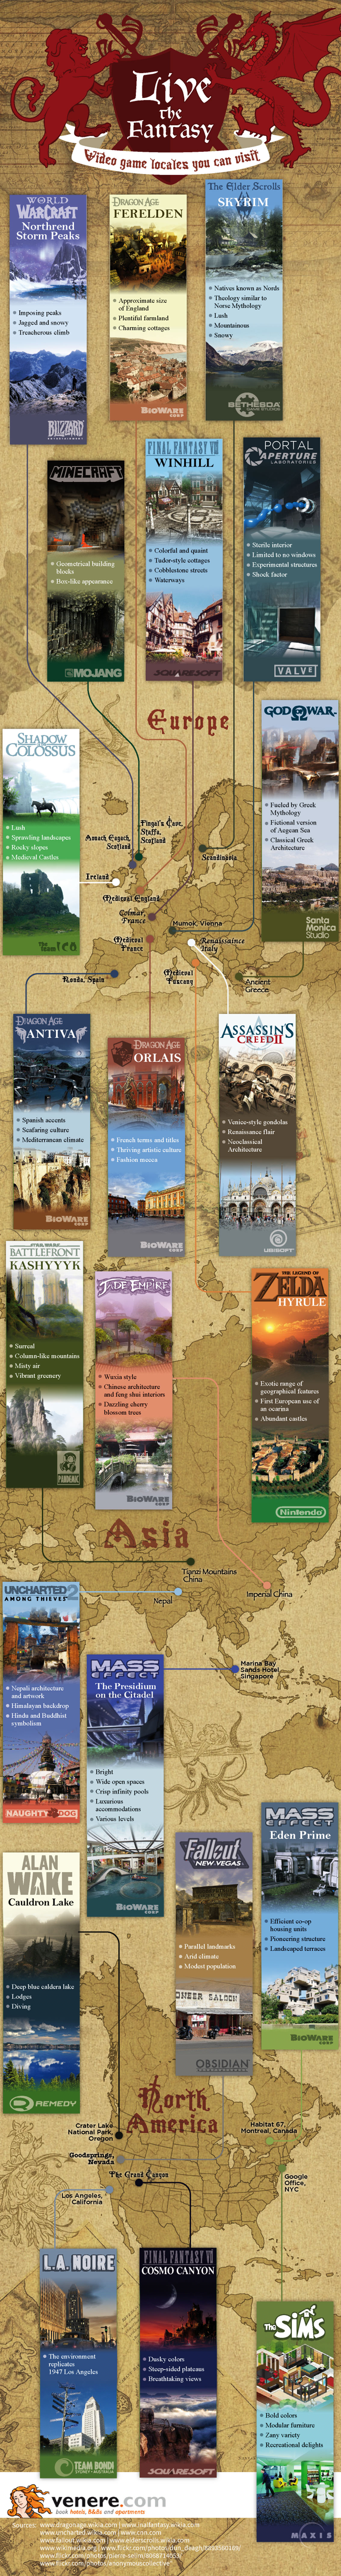 Video Game Locations You Can Travel in Real Life Infographic